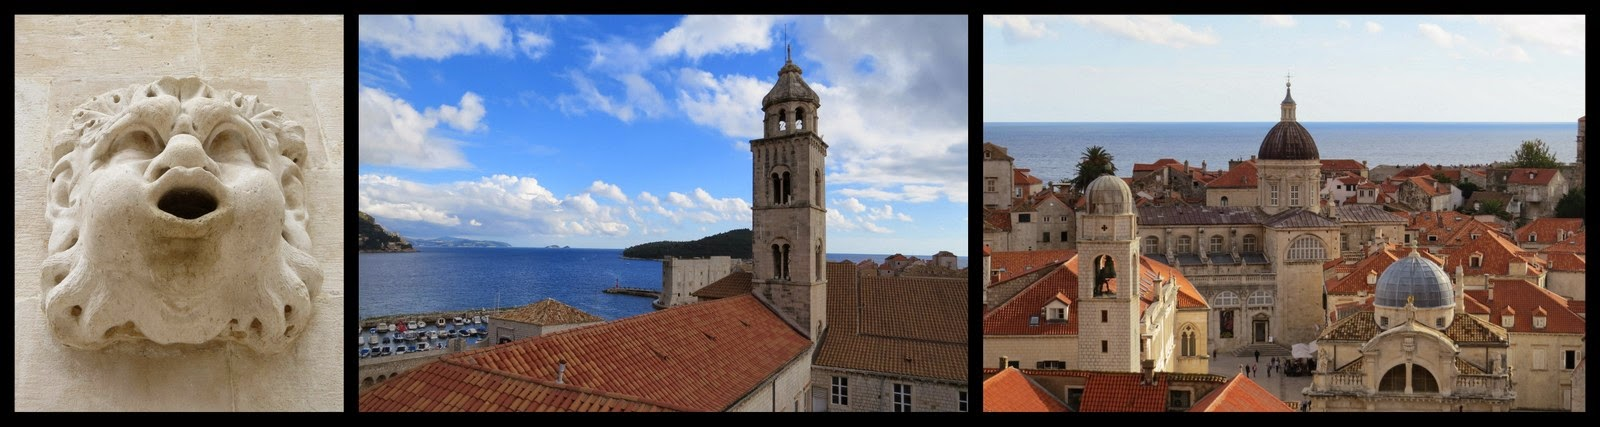 Travel Highlights - Dubrovnik